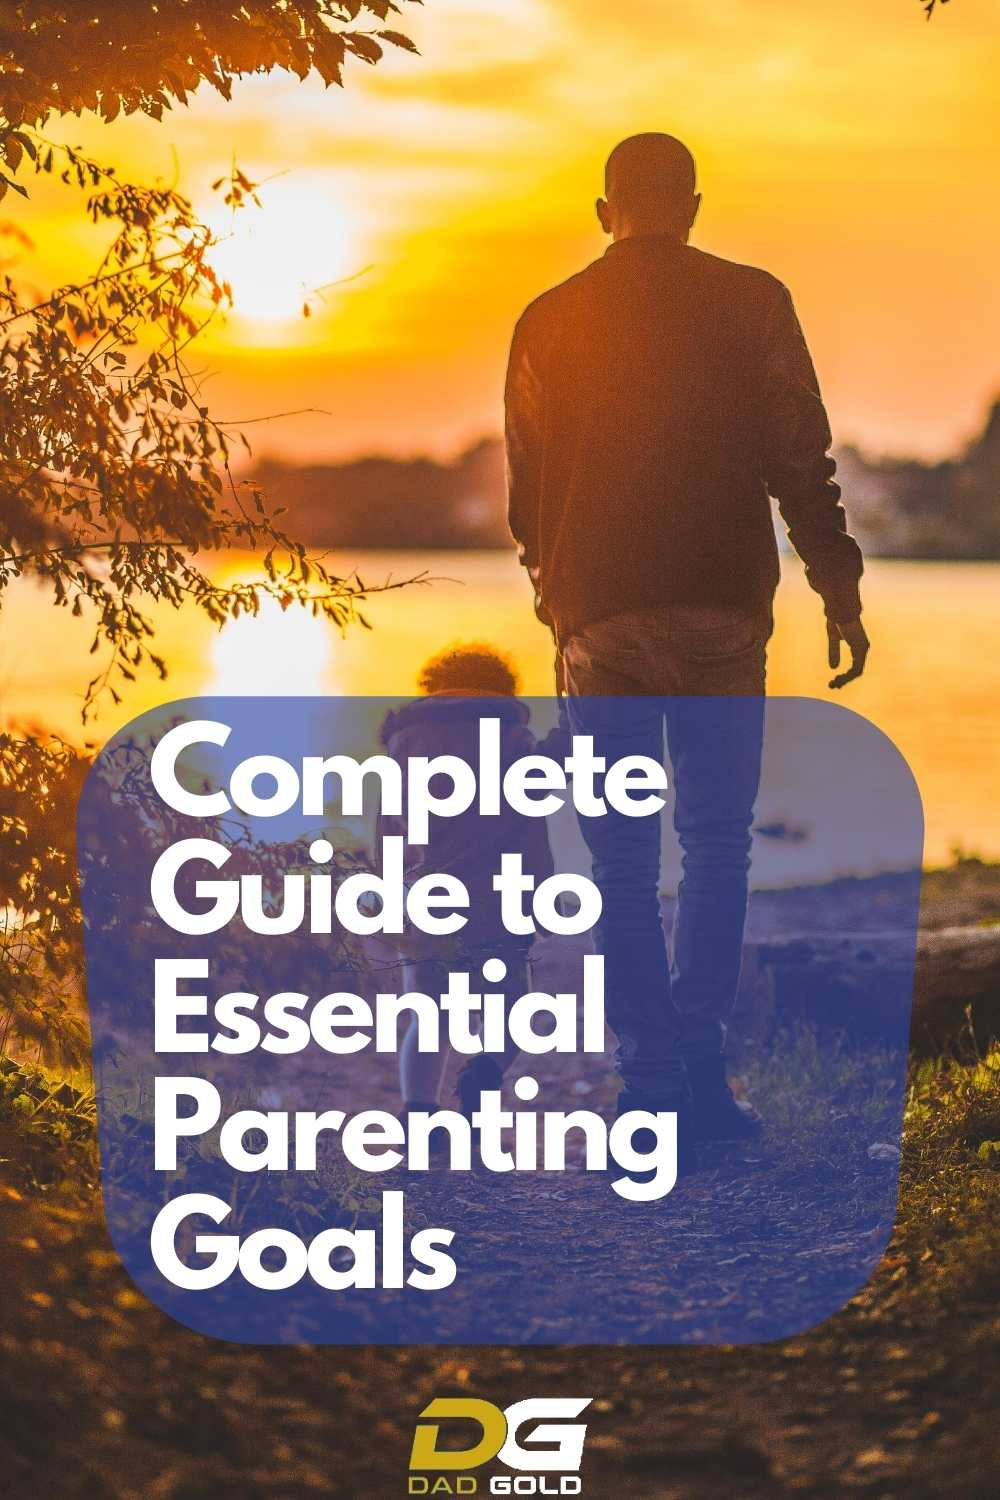 Complete Guide to Essential Parenting Goals